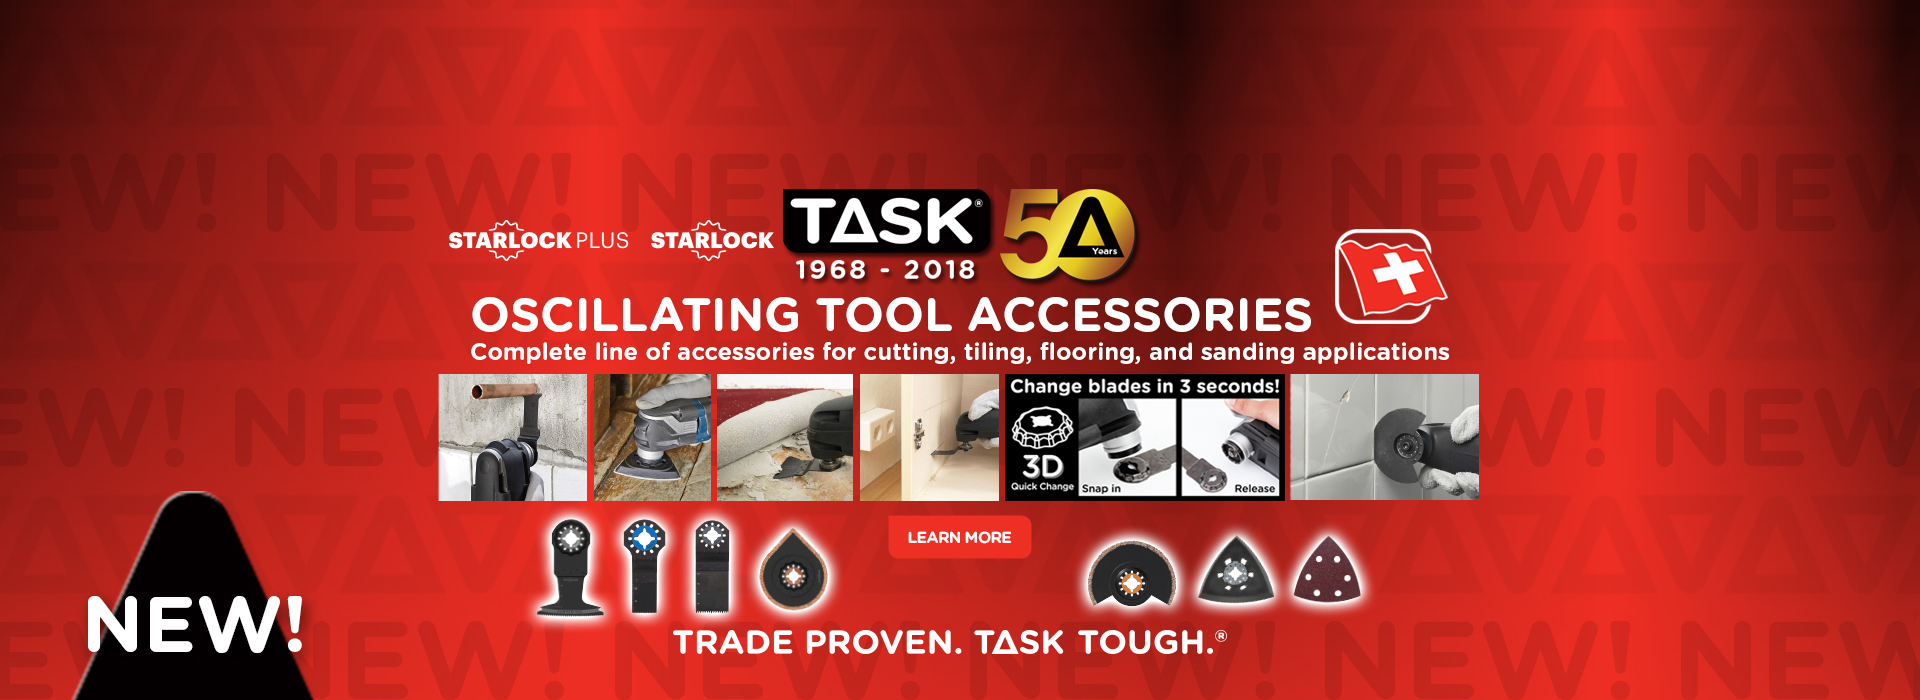 Oscillating Tool Accessories